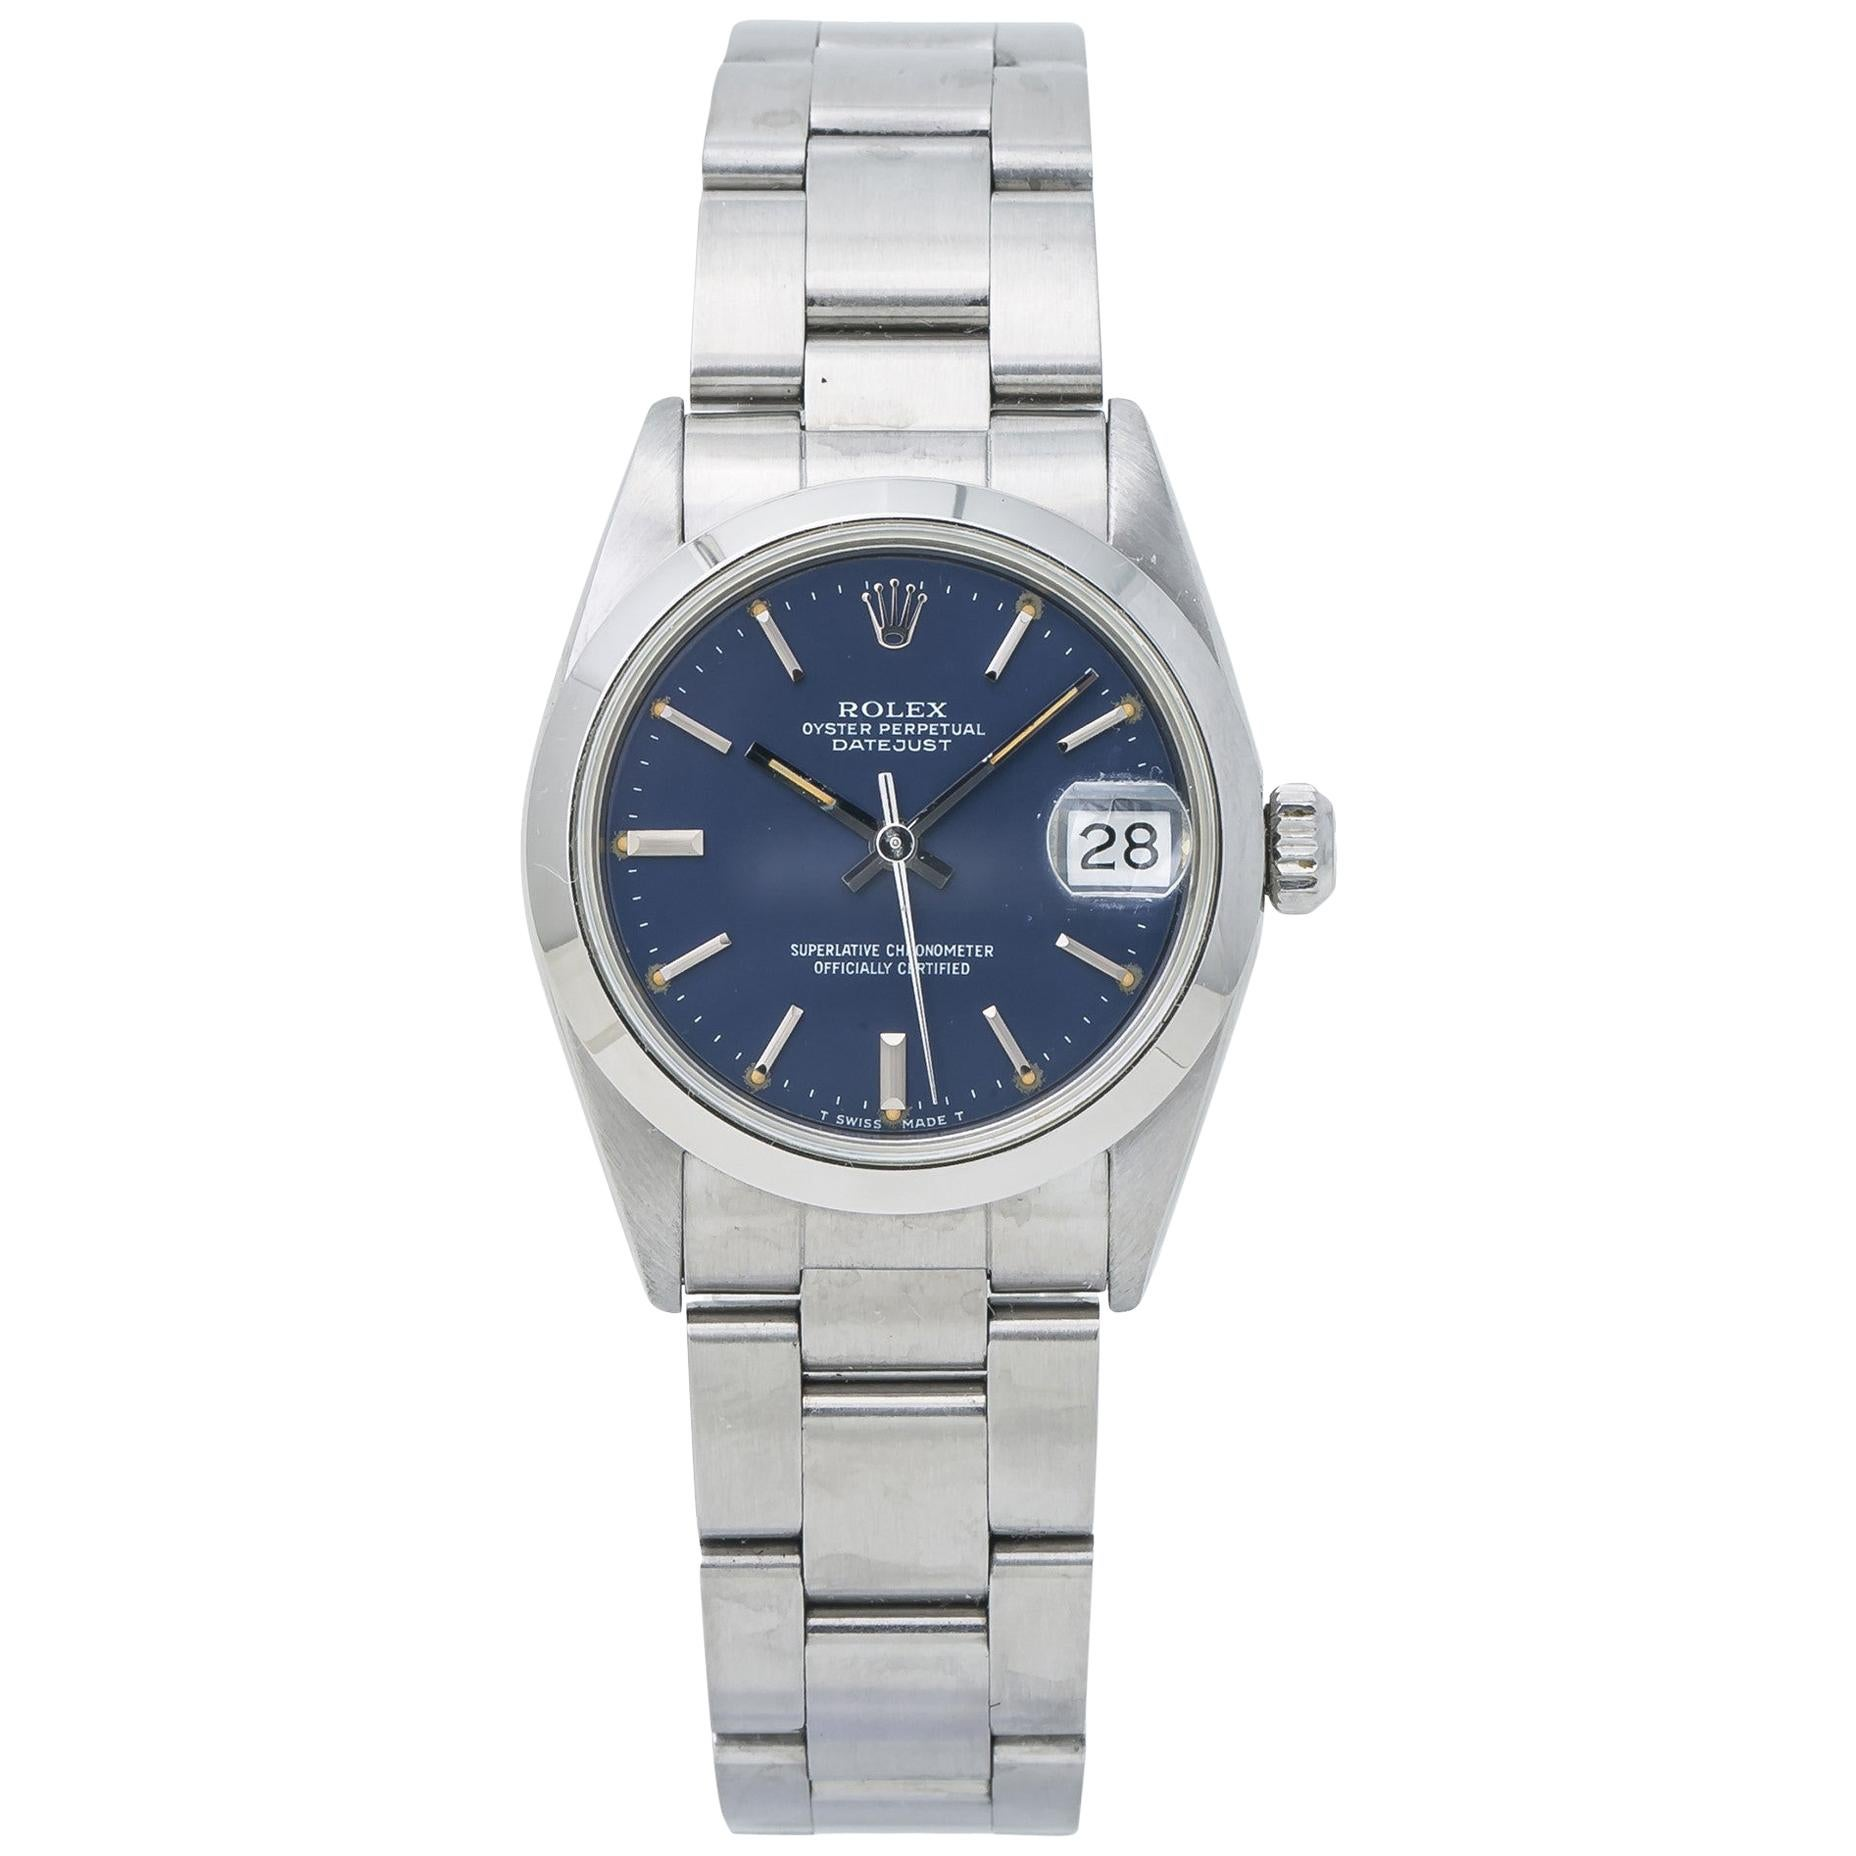 Rolex 68240 Midsize Datejust with Papers Blue Dial Stainless Steel